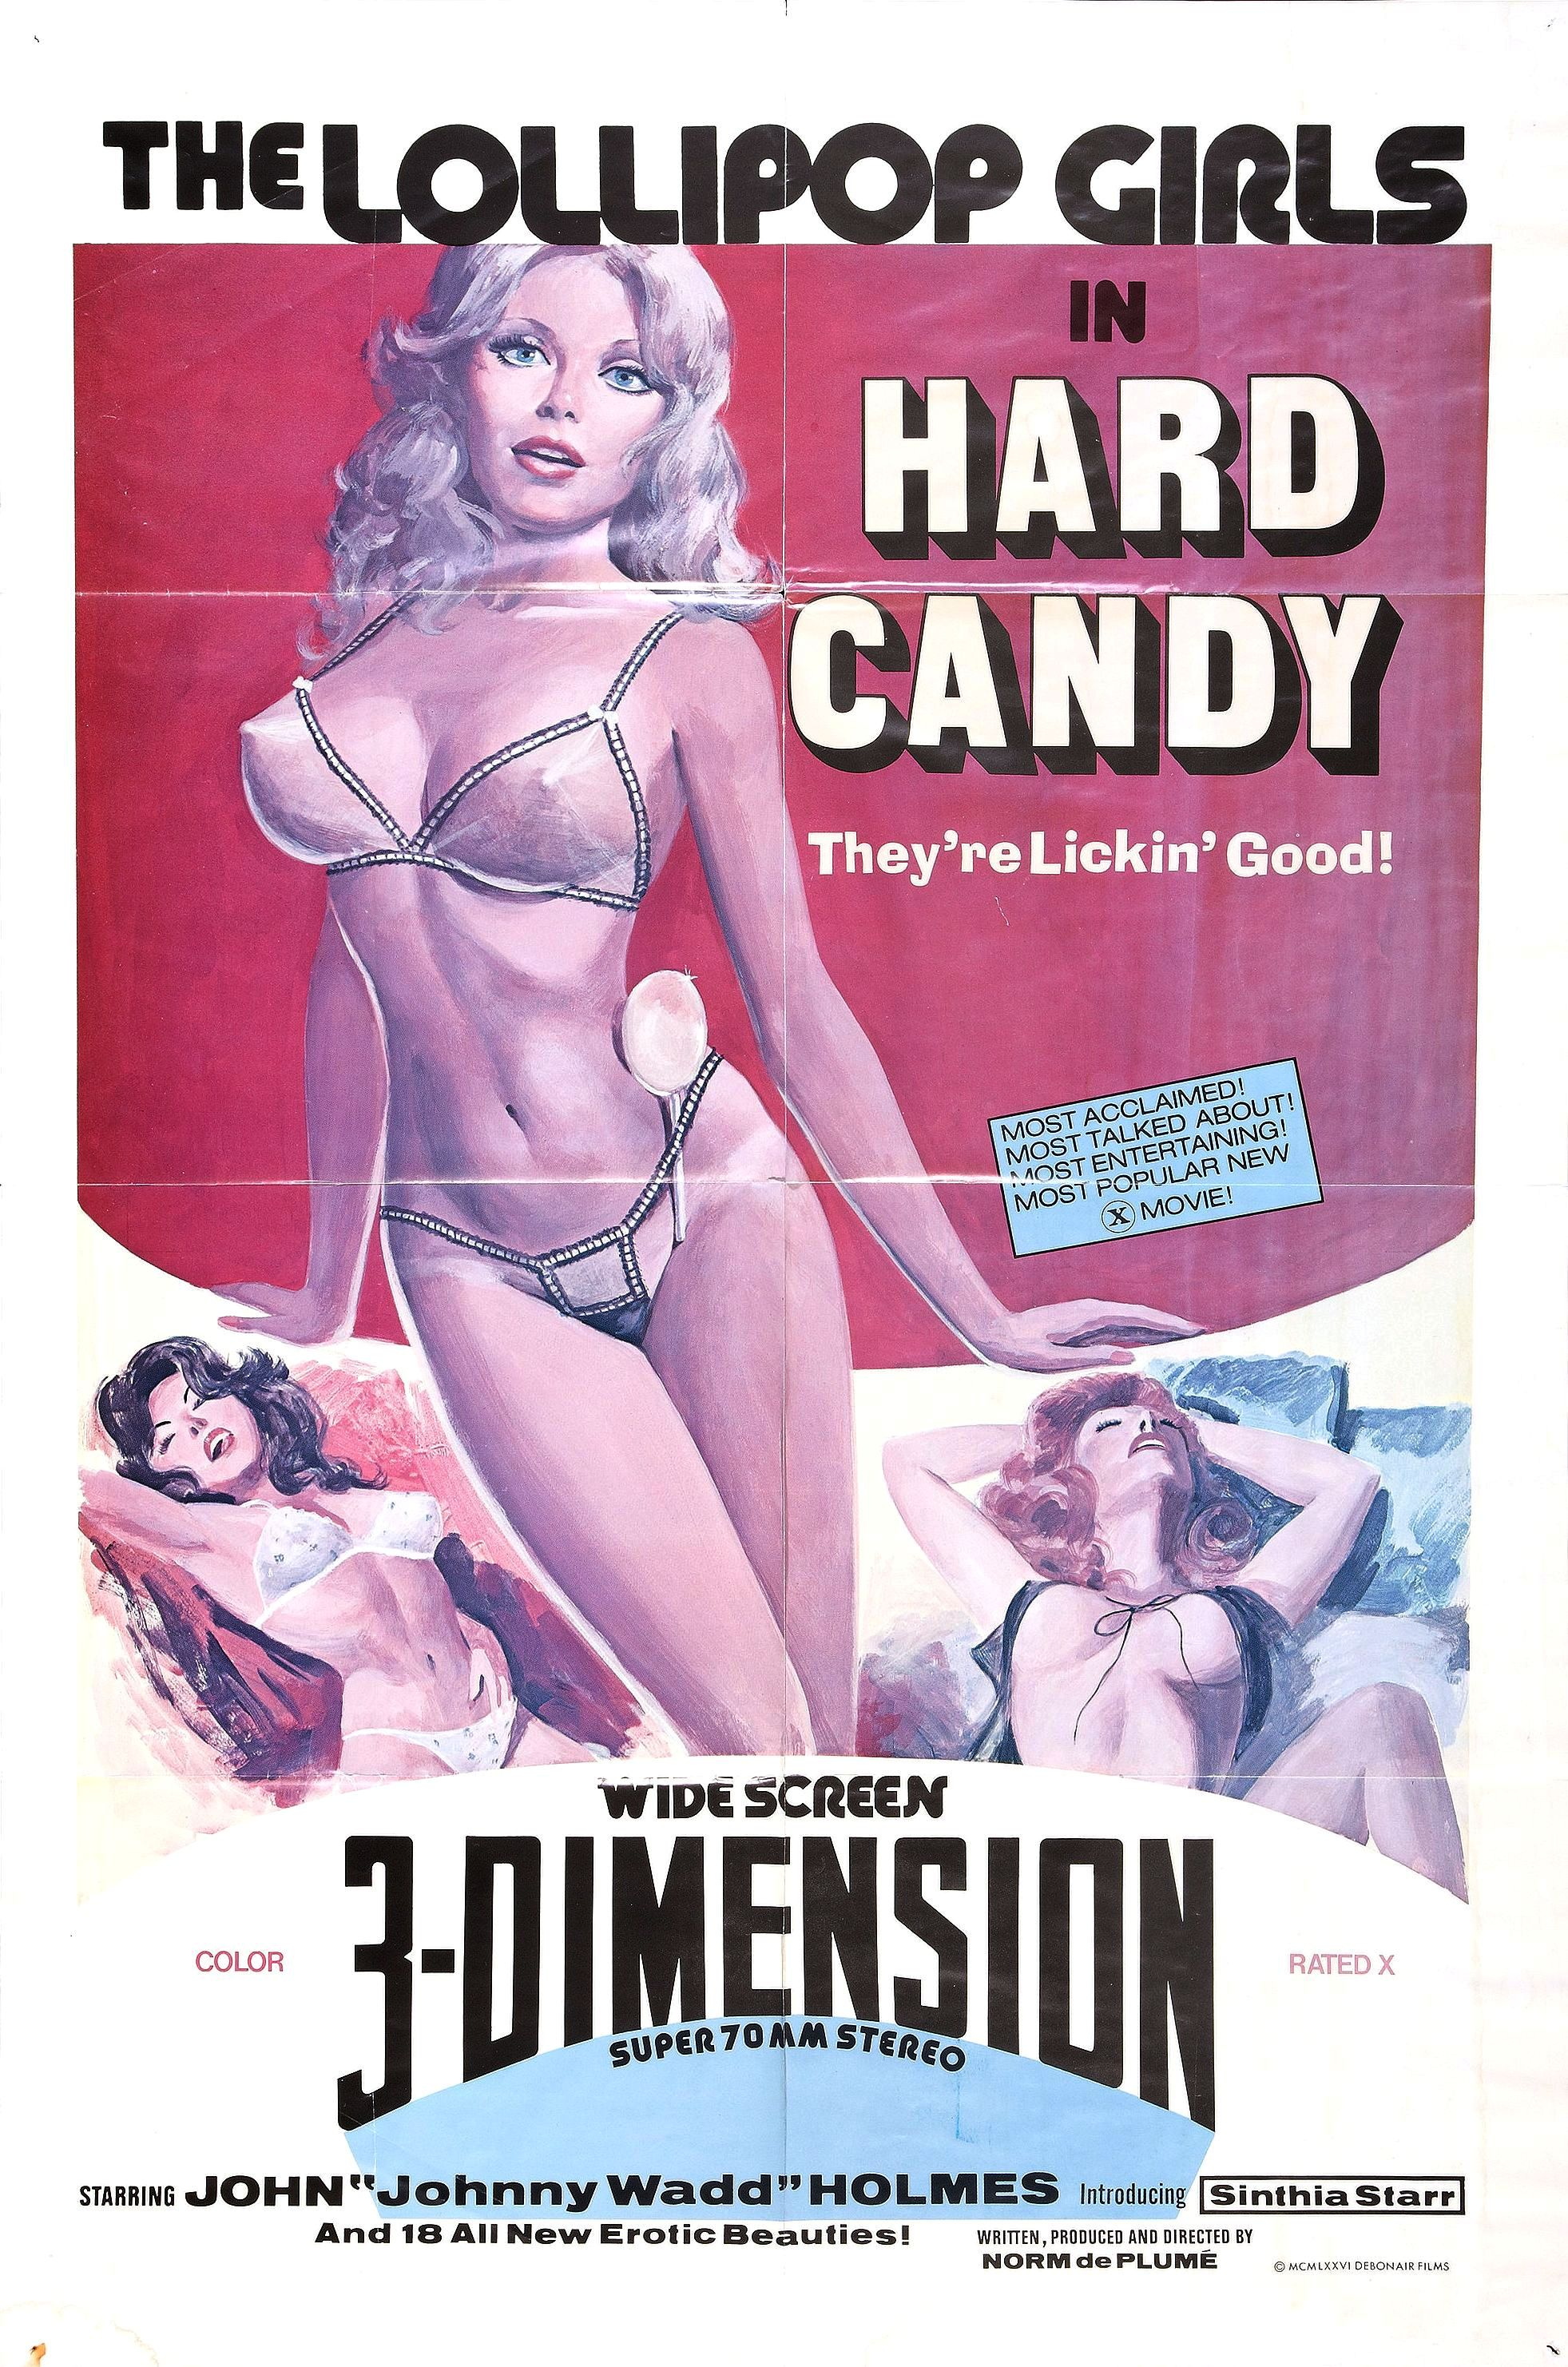 Vintage porn mag adverts 14 - Vintage Adult Film Posters